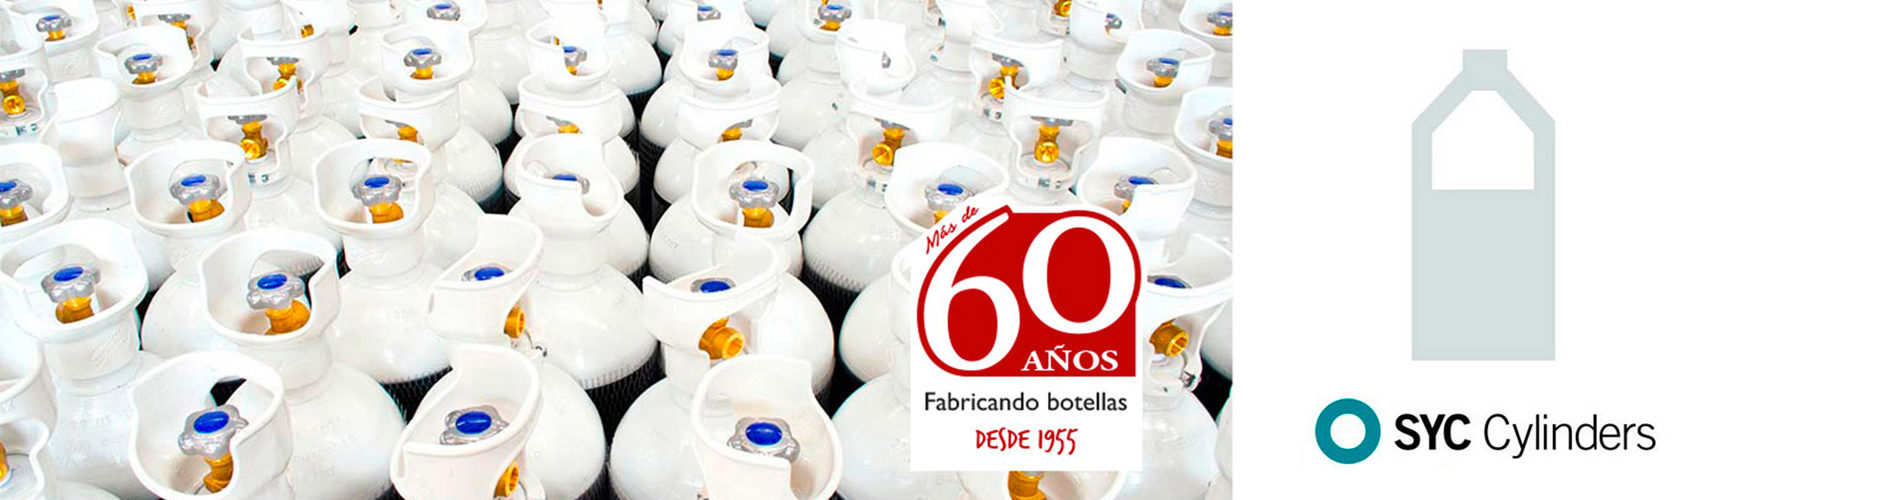 banner bouteilles industrielles syc cylinders 60 ans